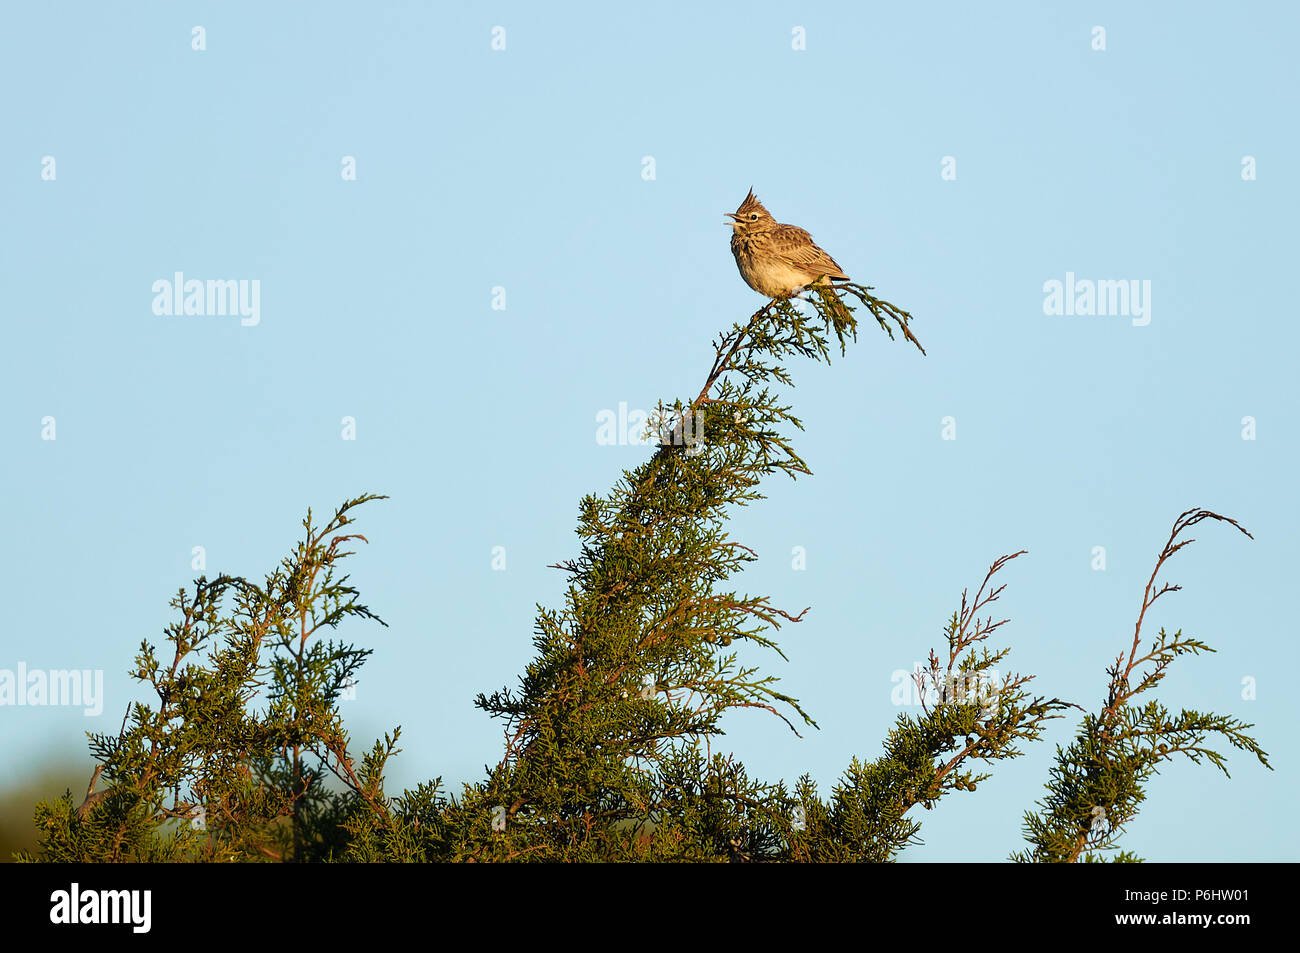 Iberian Thekla's lark (Galerida theklae theklae) over a Juniperus branch in Can Marroig in Ses Salines Natural Park(Formentera,Balearic islands,Spain) - Stock Image